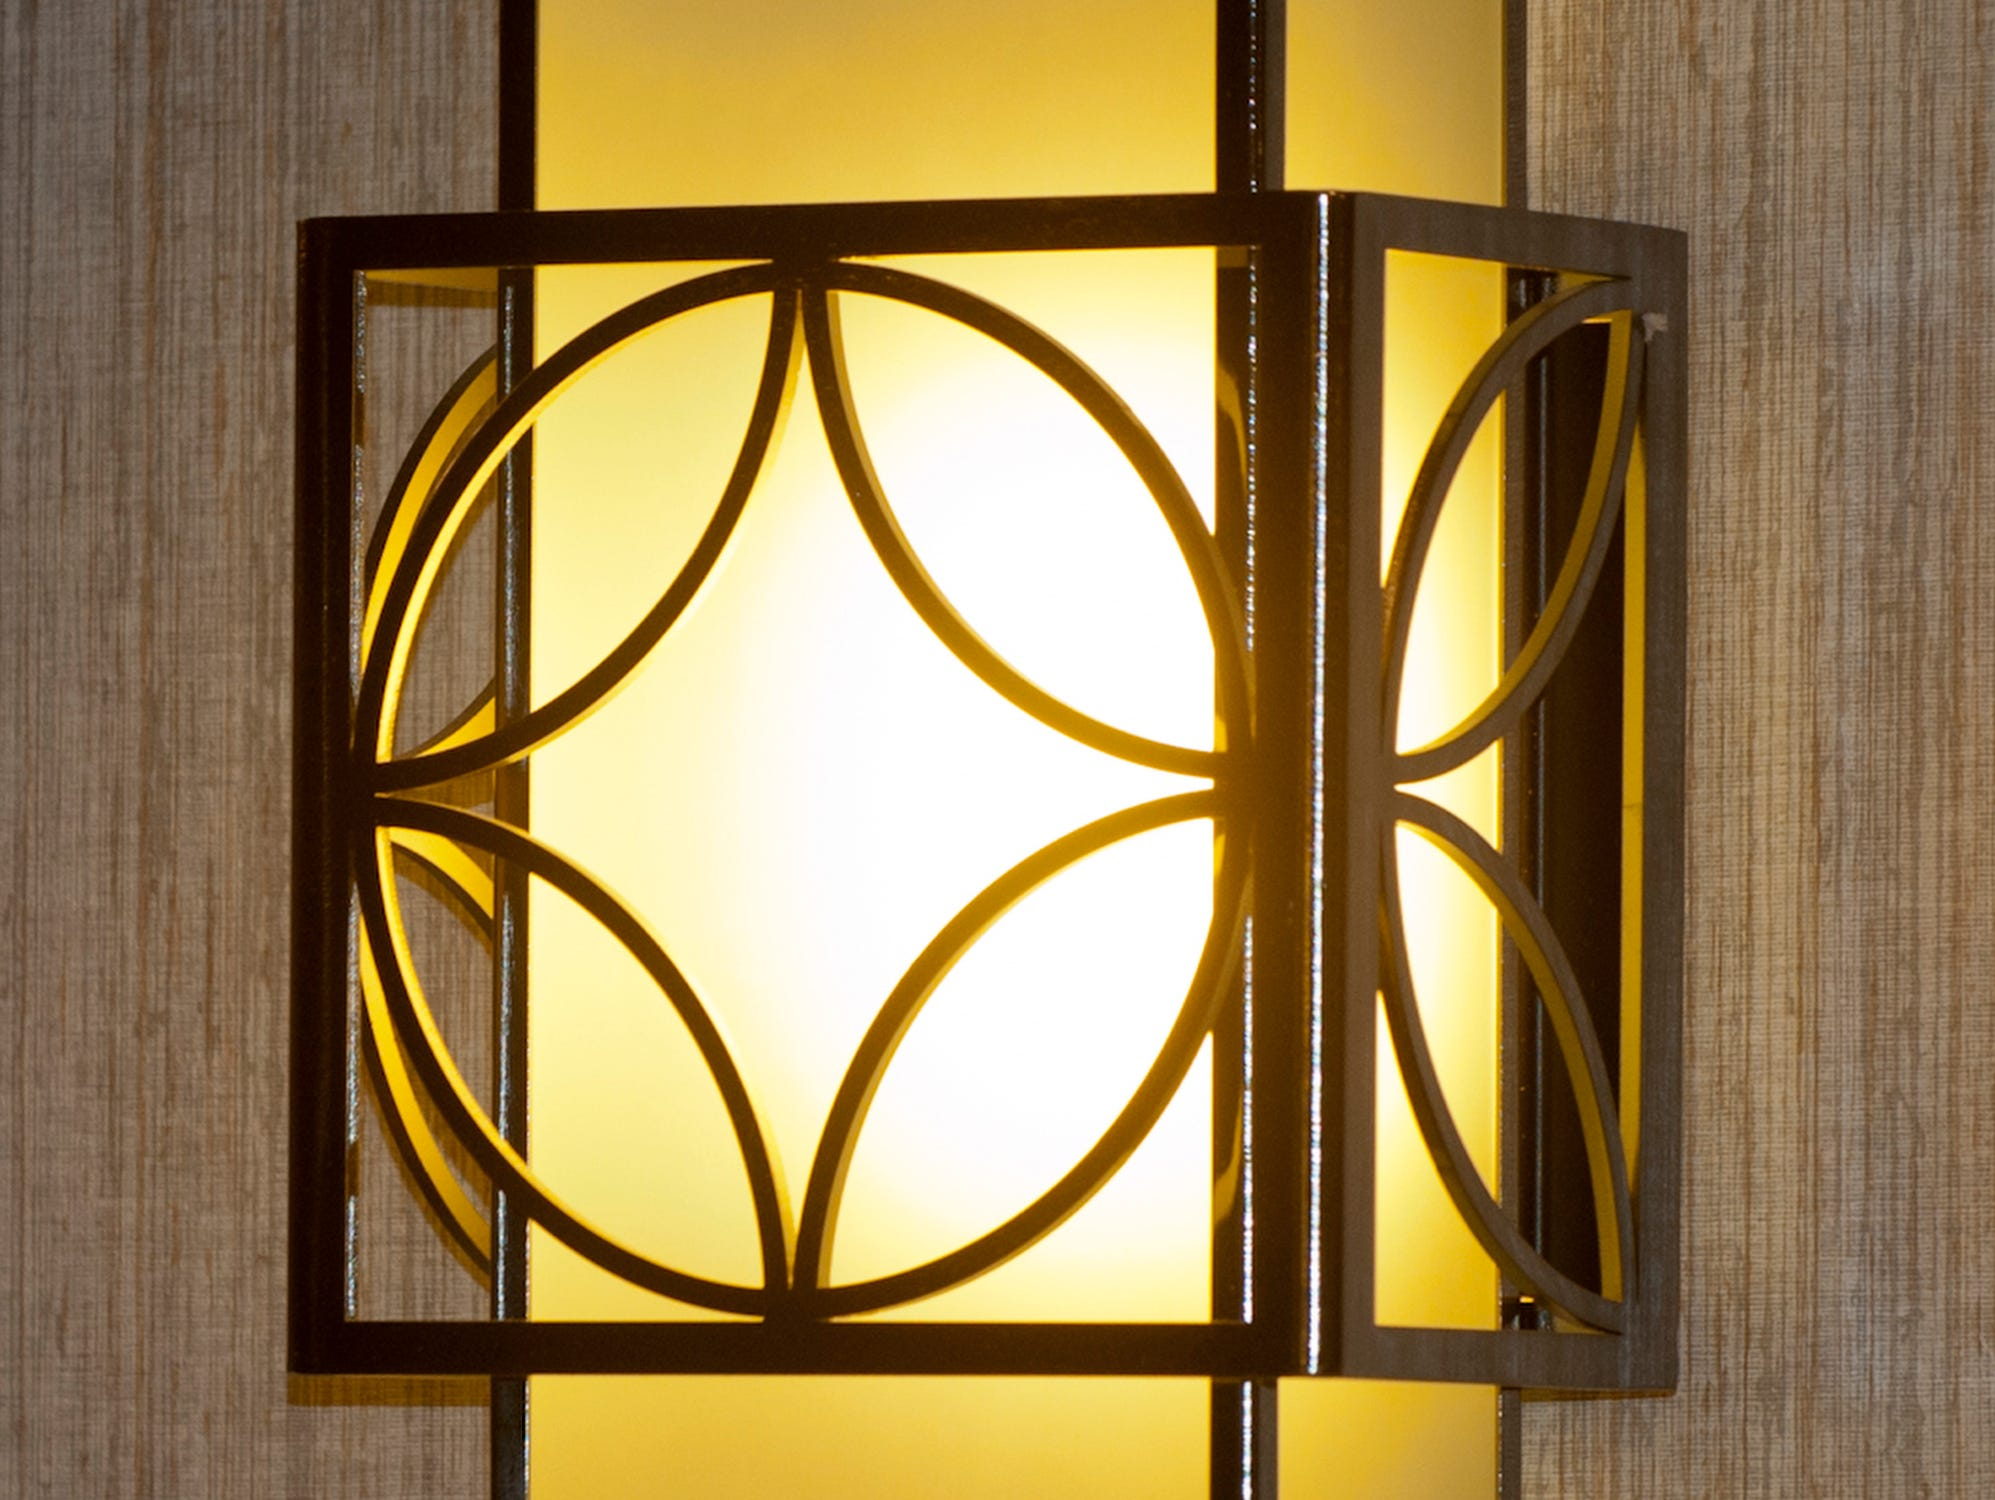 Wall sconces help to illuminate the cabin interiors.11 December 2018